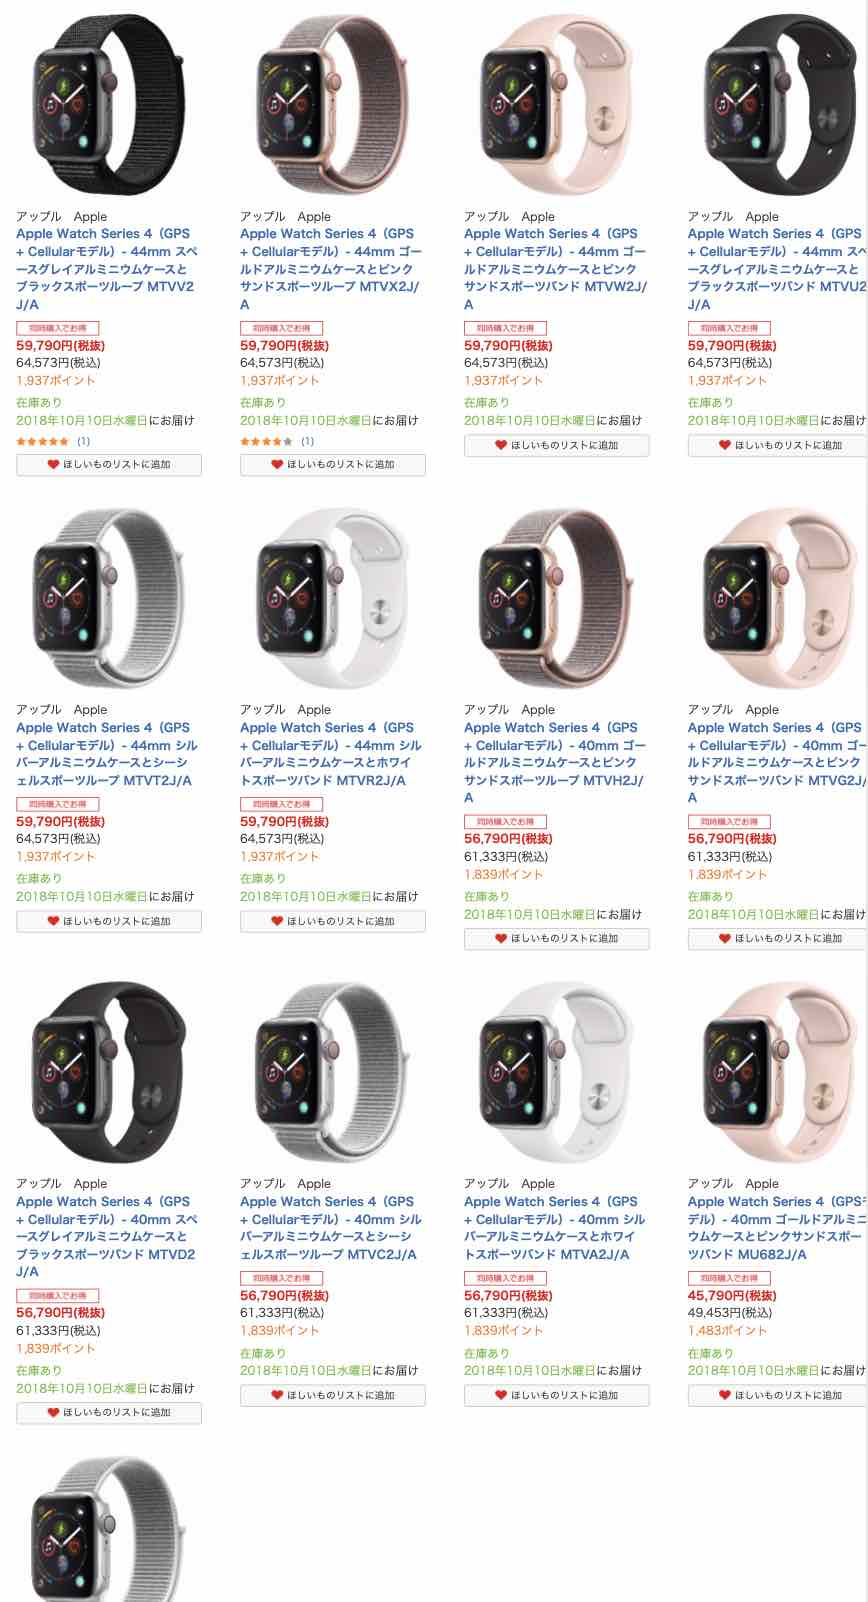 Apple Watch Series 4 stock - 2